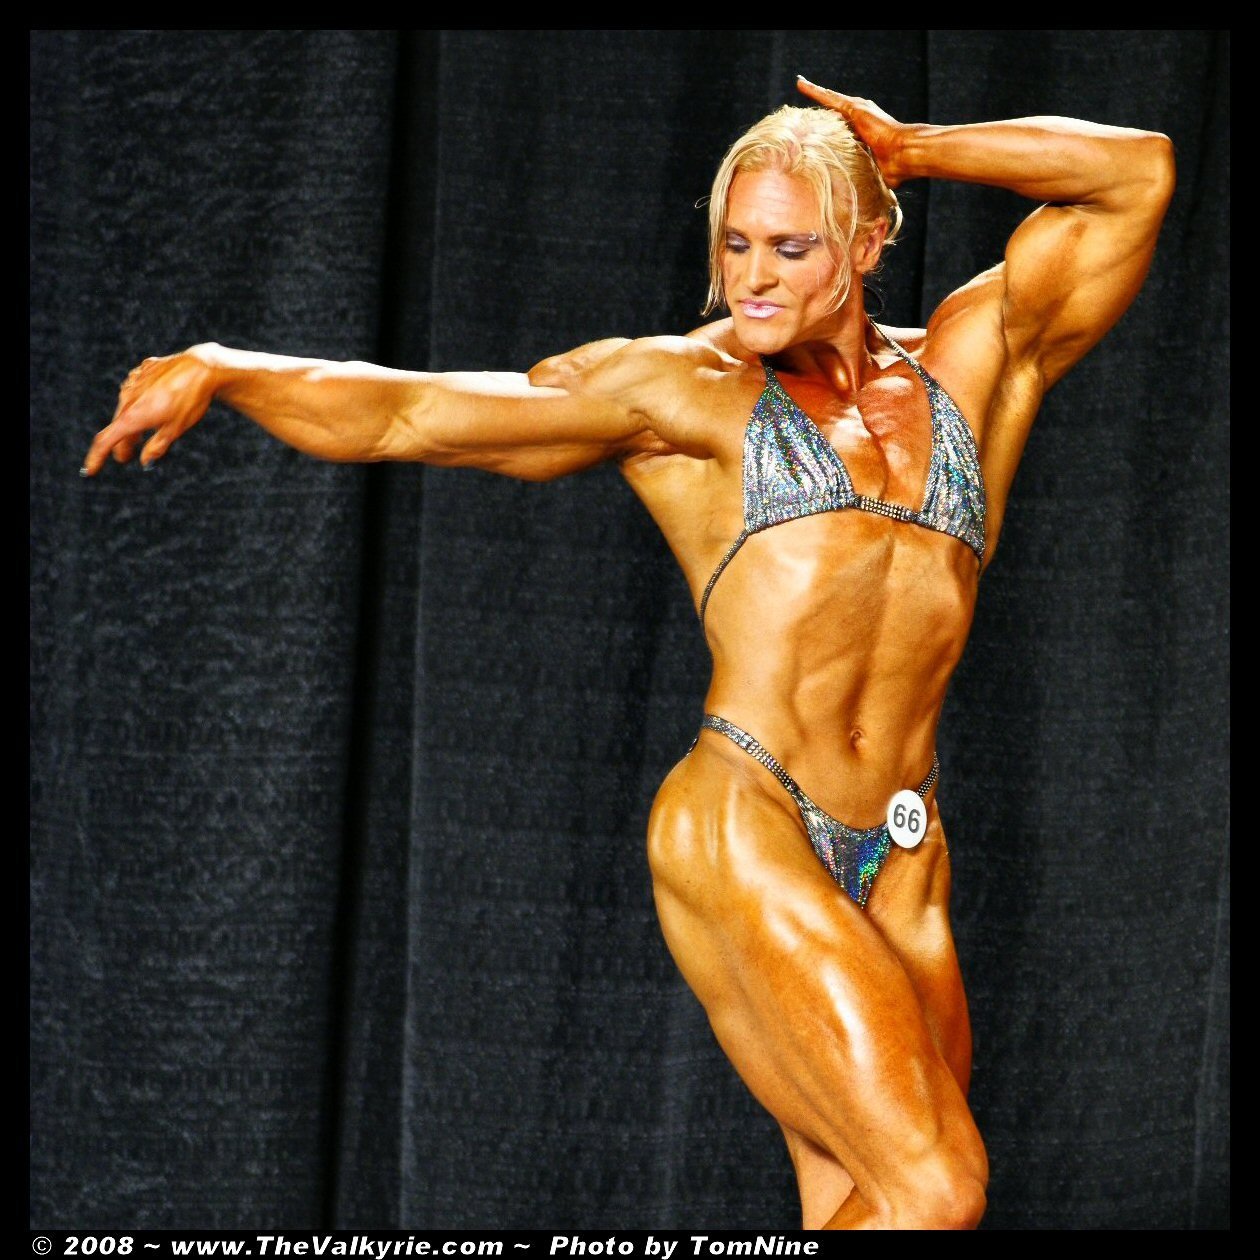 Muscle women foto naked toons